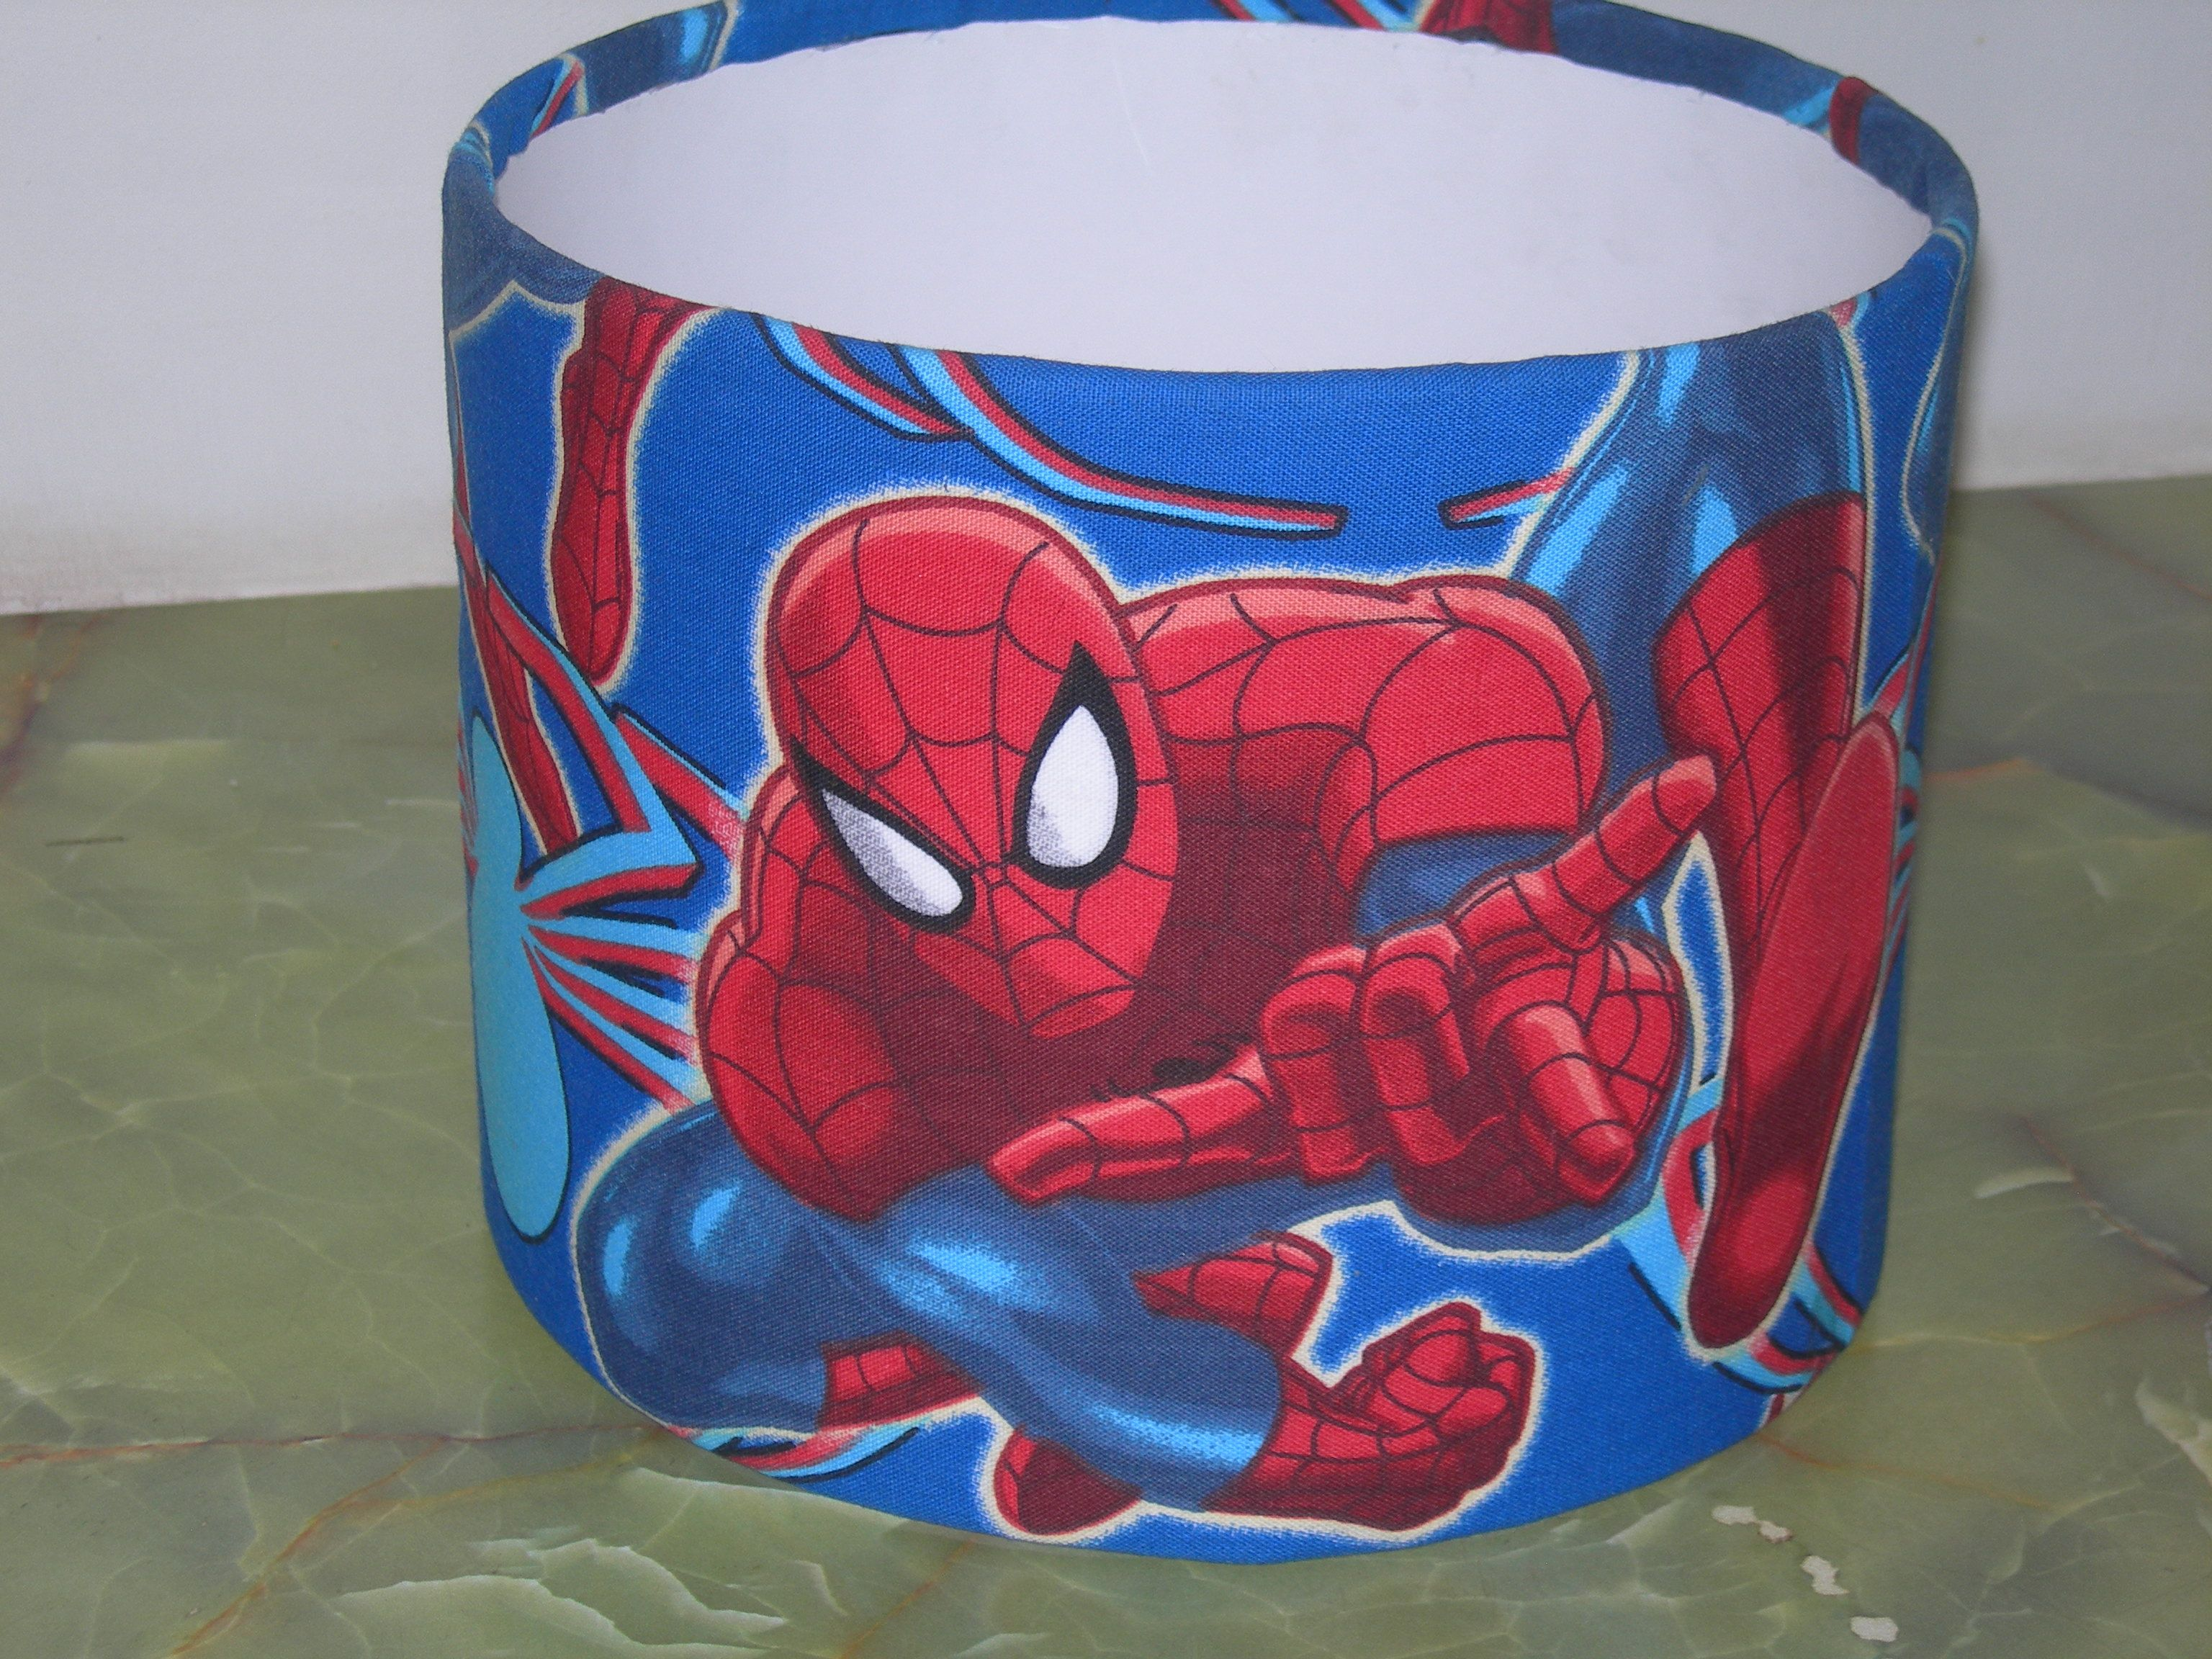 Covered Spiderman Lampshade For A Friends Sons Room Makeover Covered  Spiderman Lampshade For A Friends Sons ...